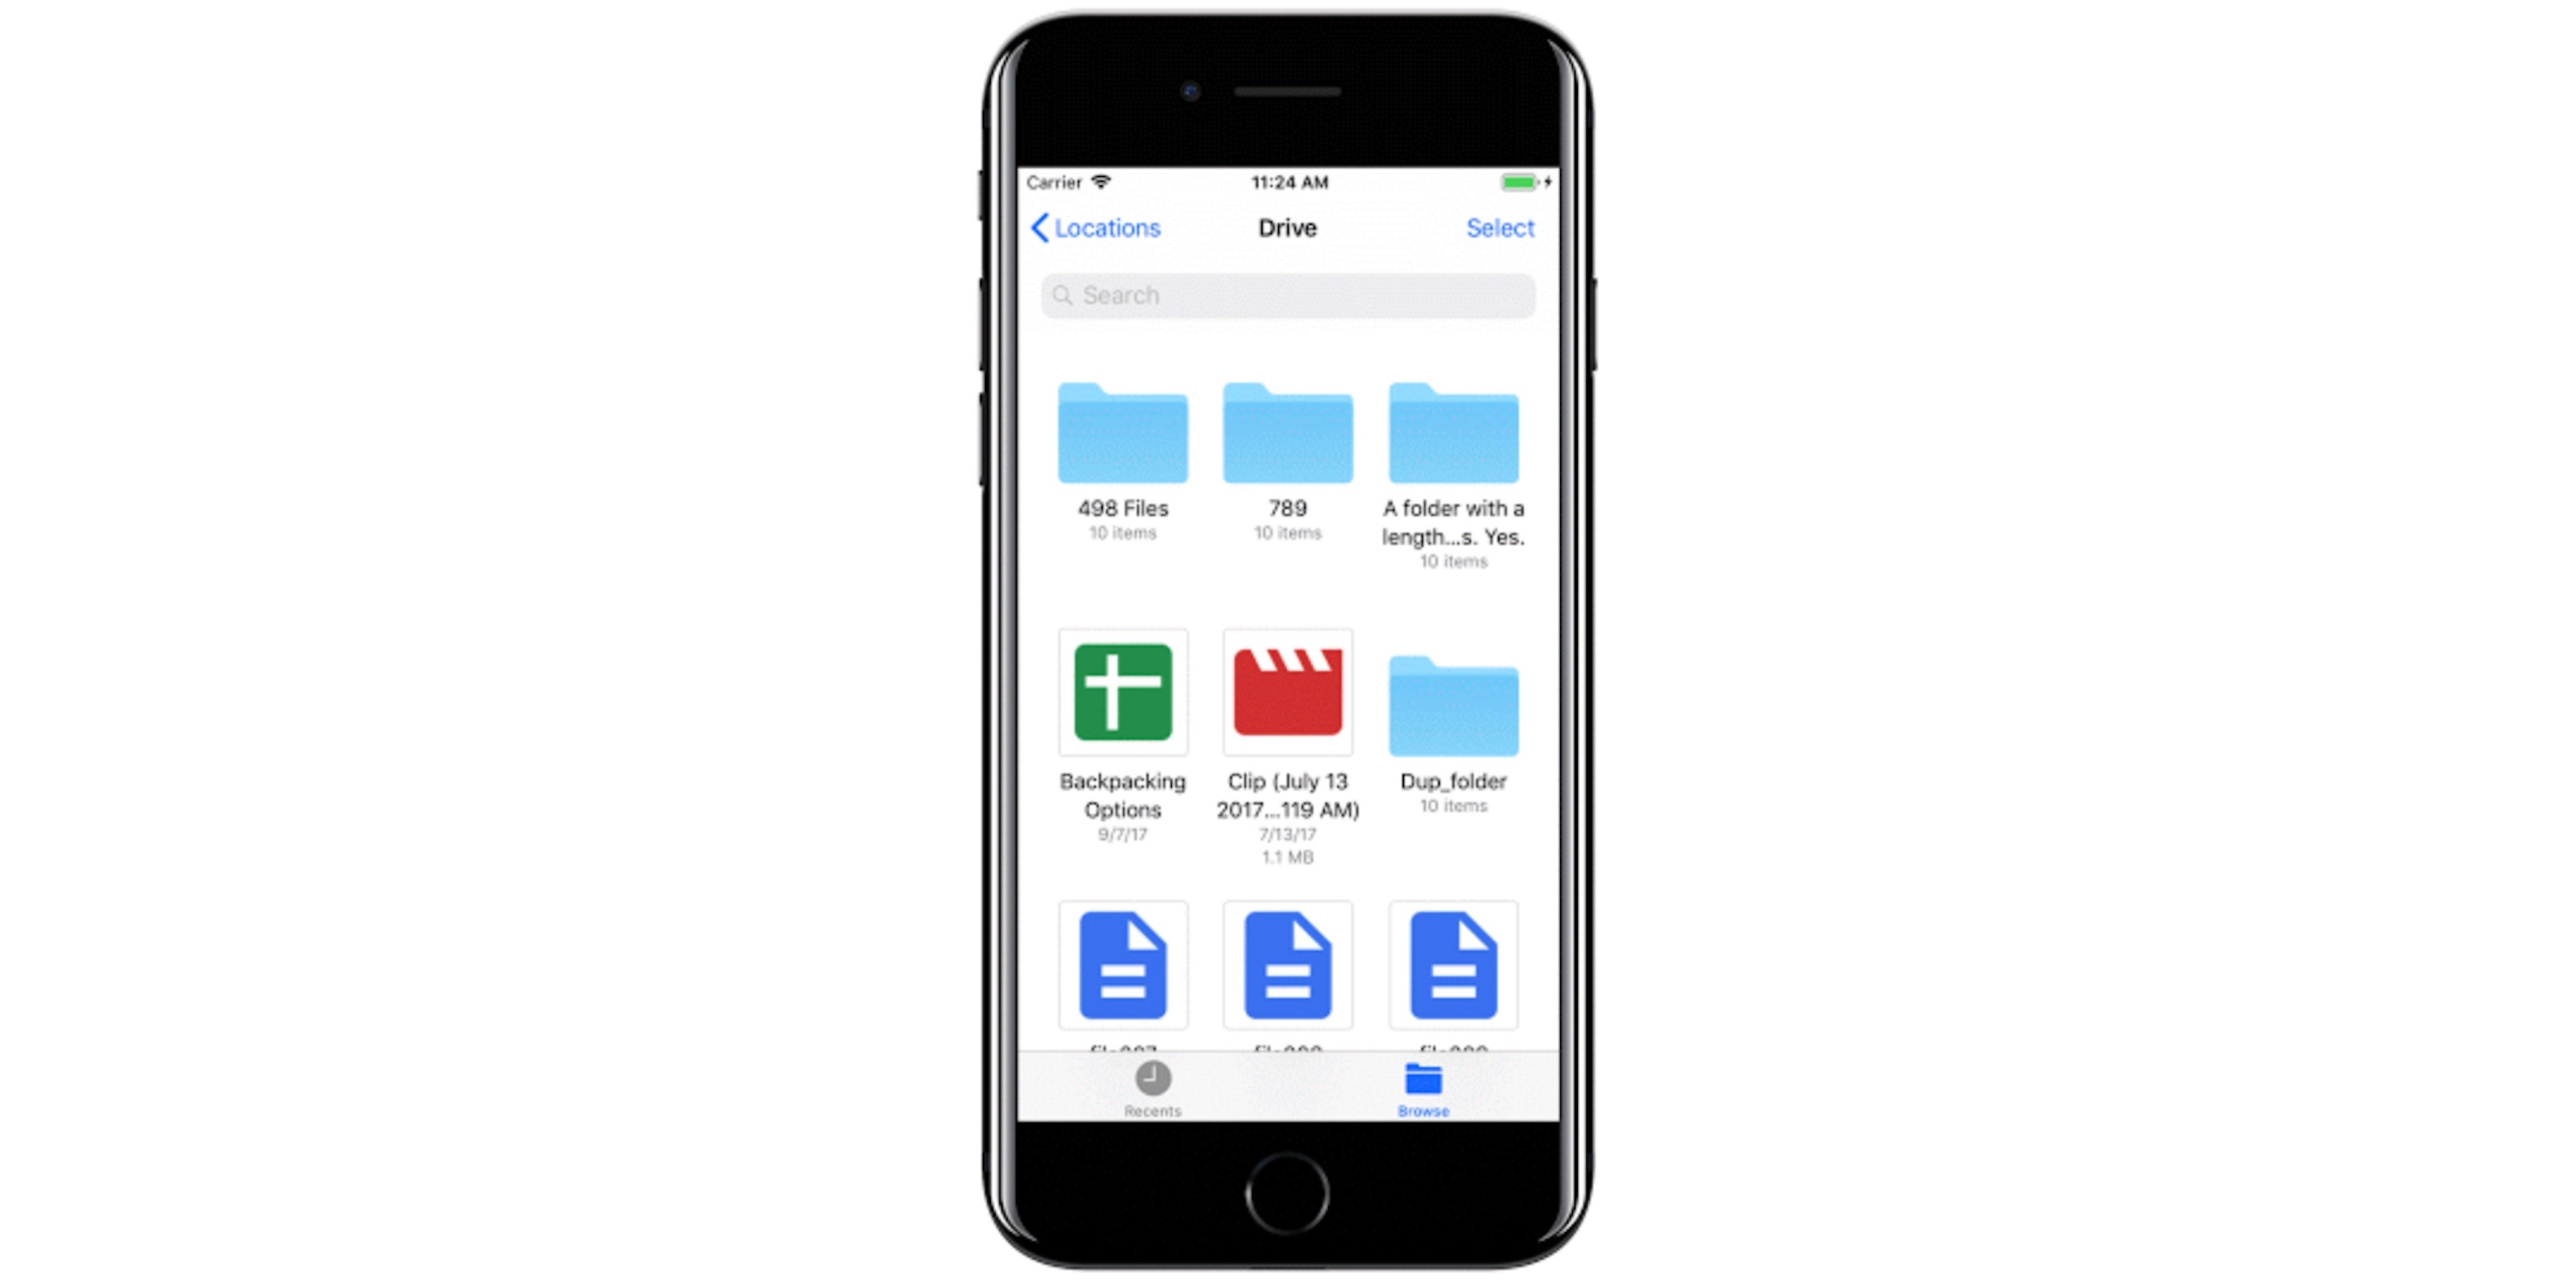 Google Drive Now Works With Ios 11 S New Files App 9to5mac